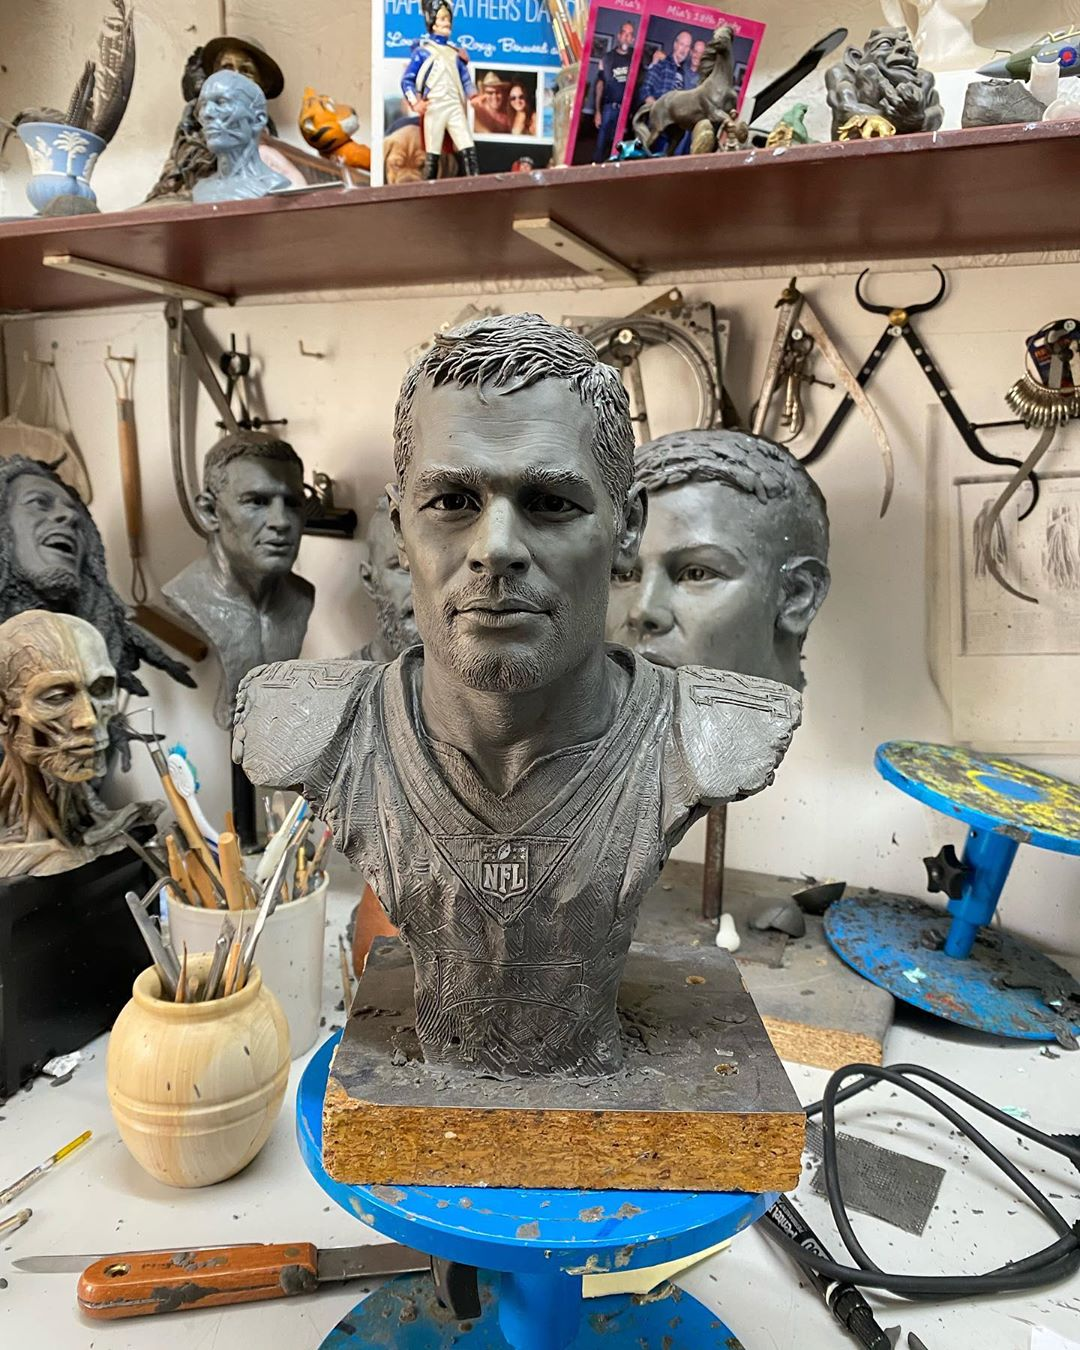 Self-Taught Sculptor Gains World Recognition For Stunning Bronze Sculptures 5